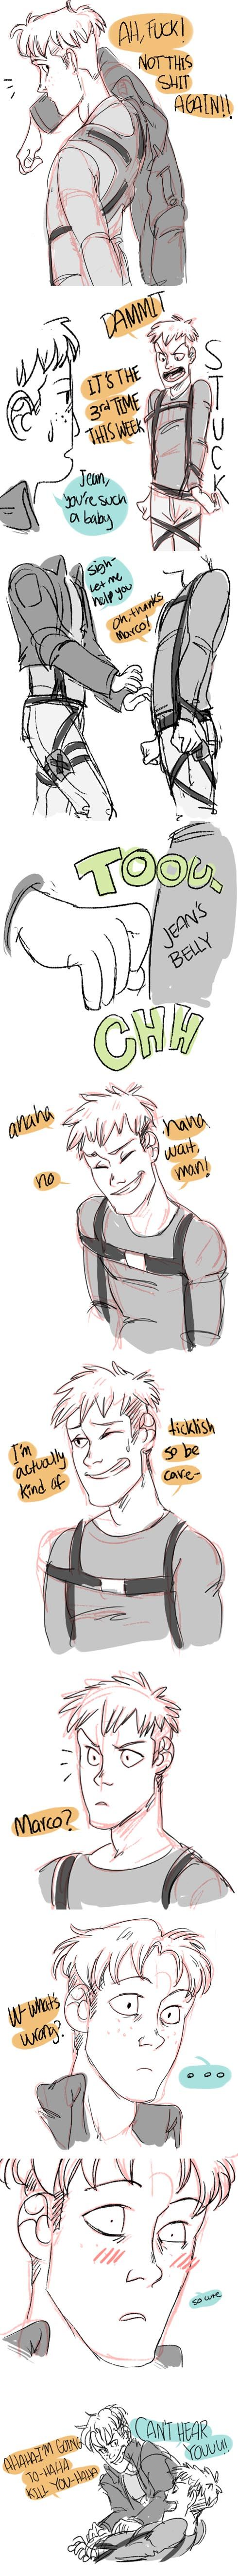 Attack on Titan ~~ When you get yourself all tied up, well.... :: Jean and Marco